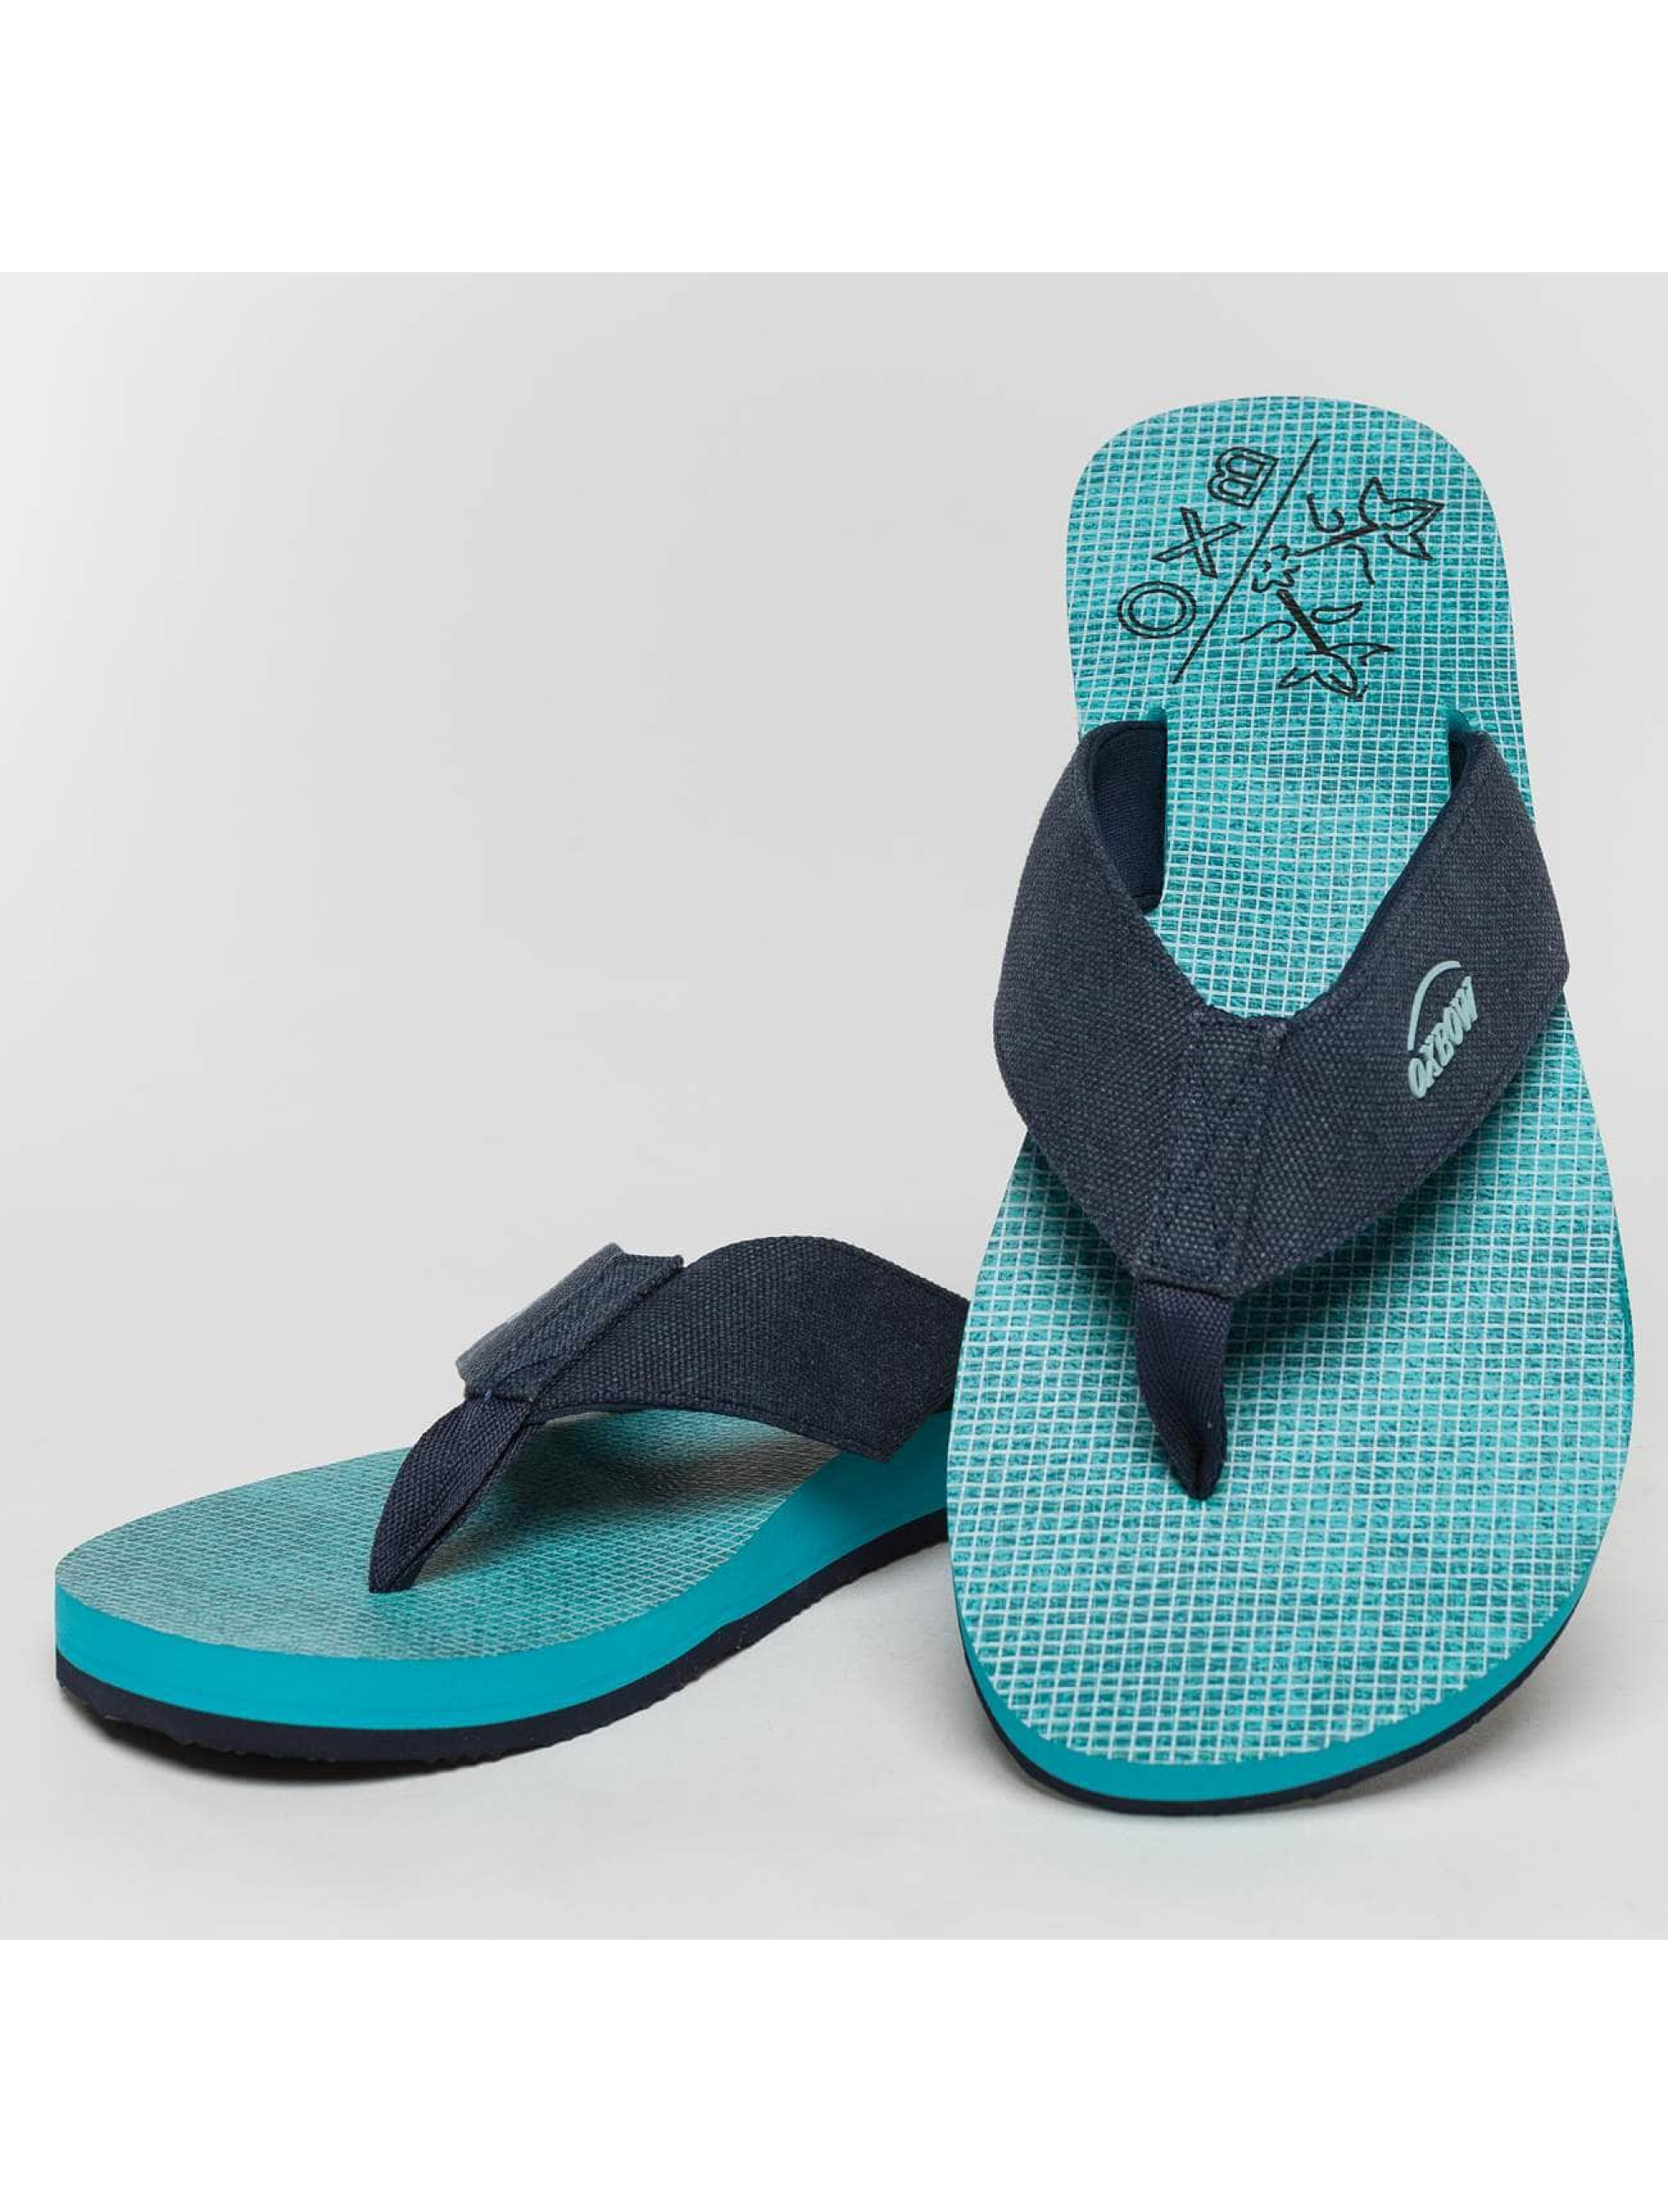 Oxbow Sandals Volcano blue